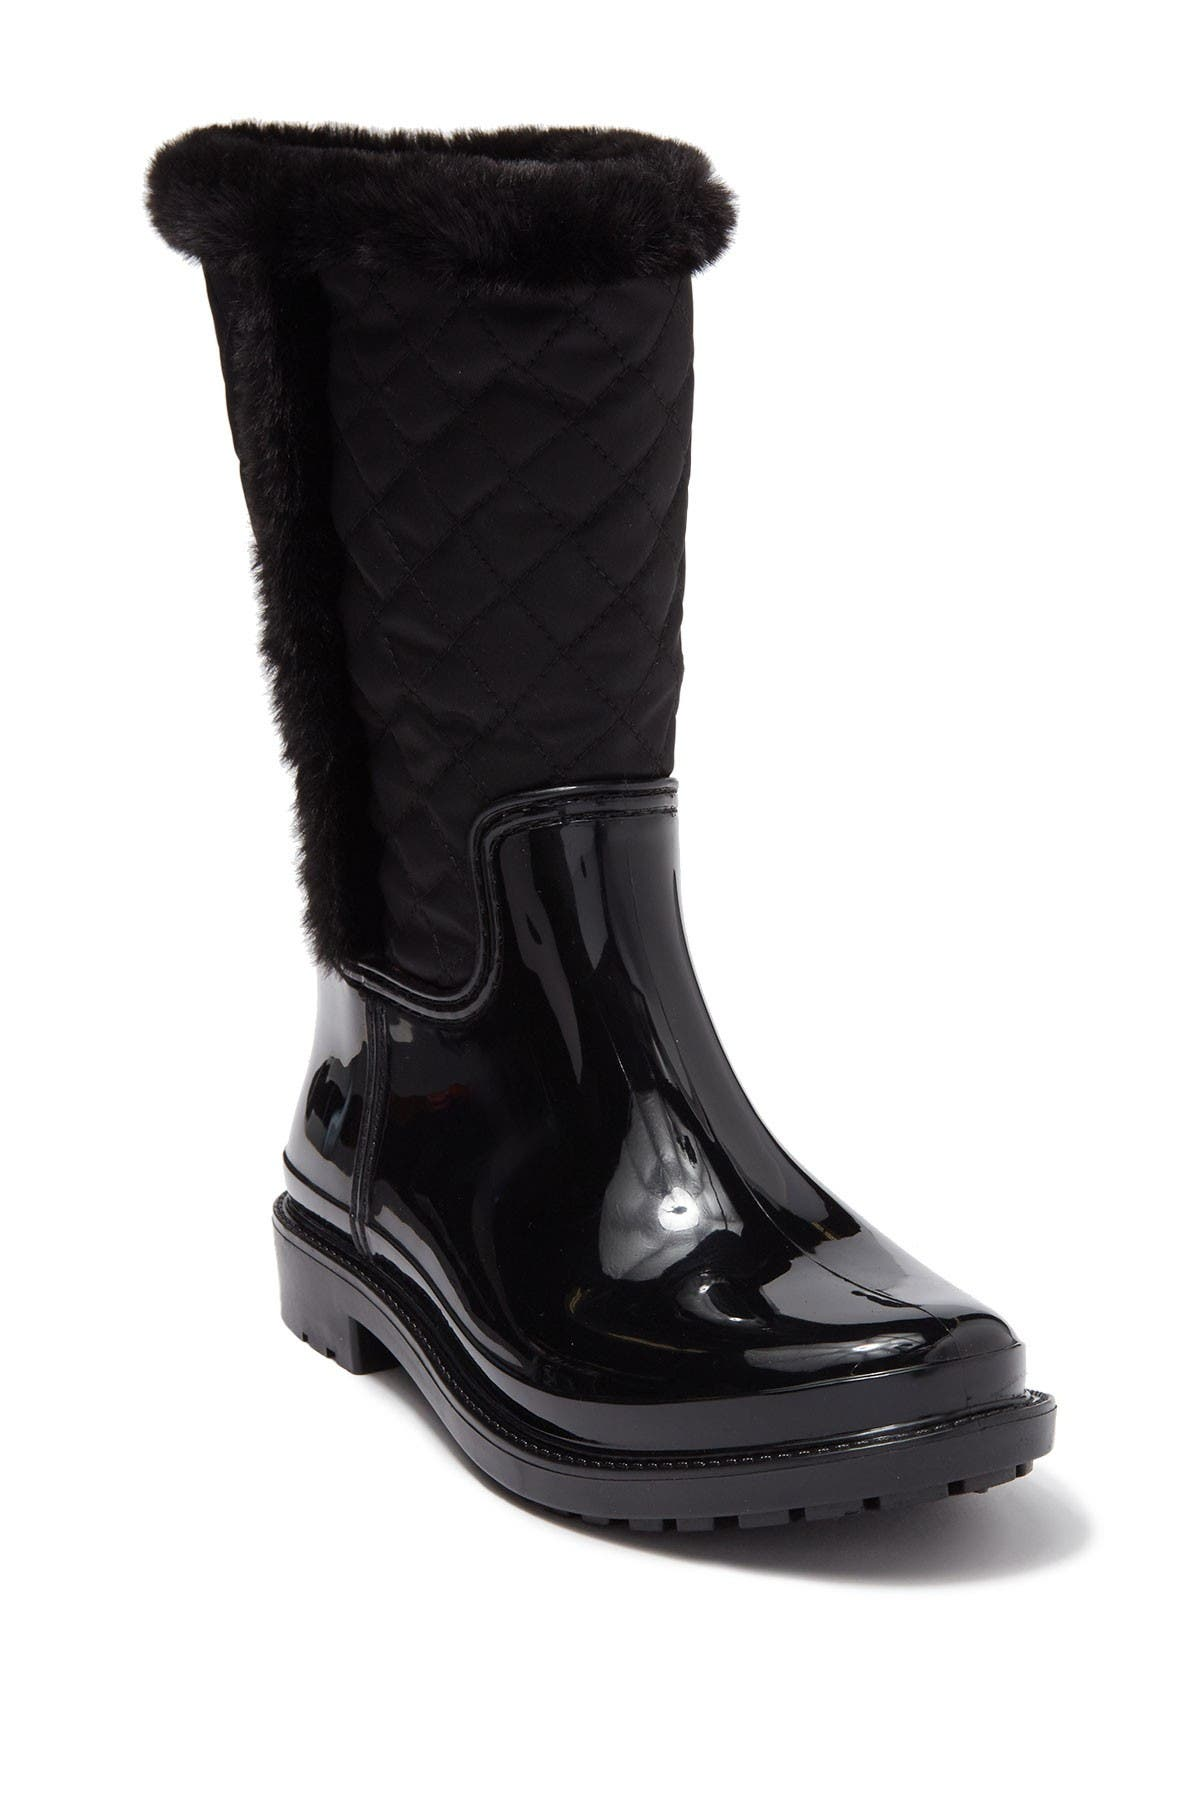 Image of Tommy Hilfiger Slushe Quilted Faux Fur Lined Rainboot